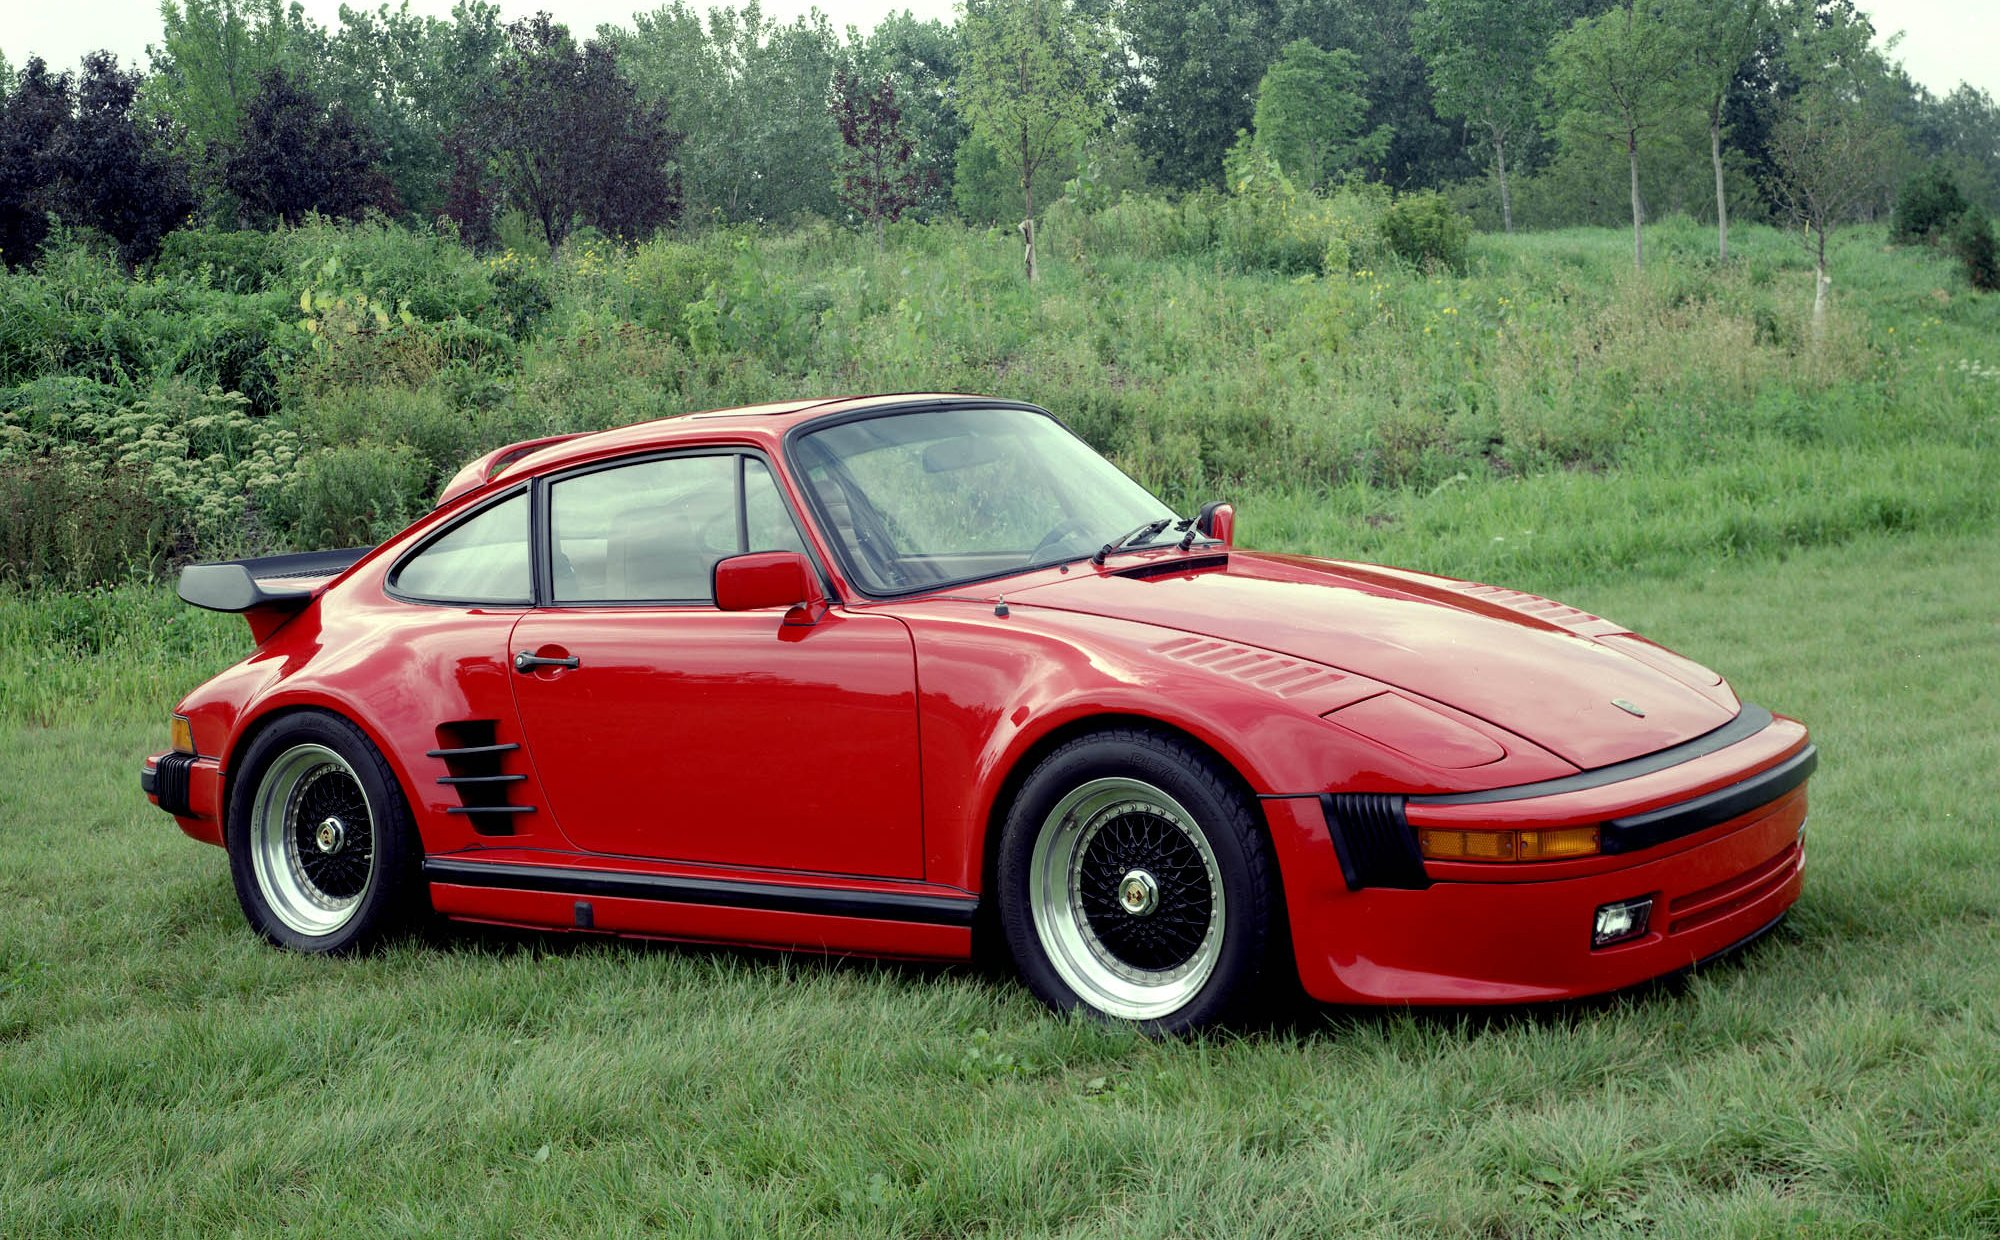 Porsche 911 Sc 25 Background Wallpaper 2000x1240